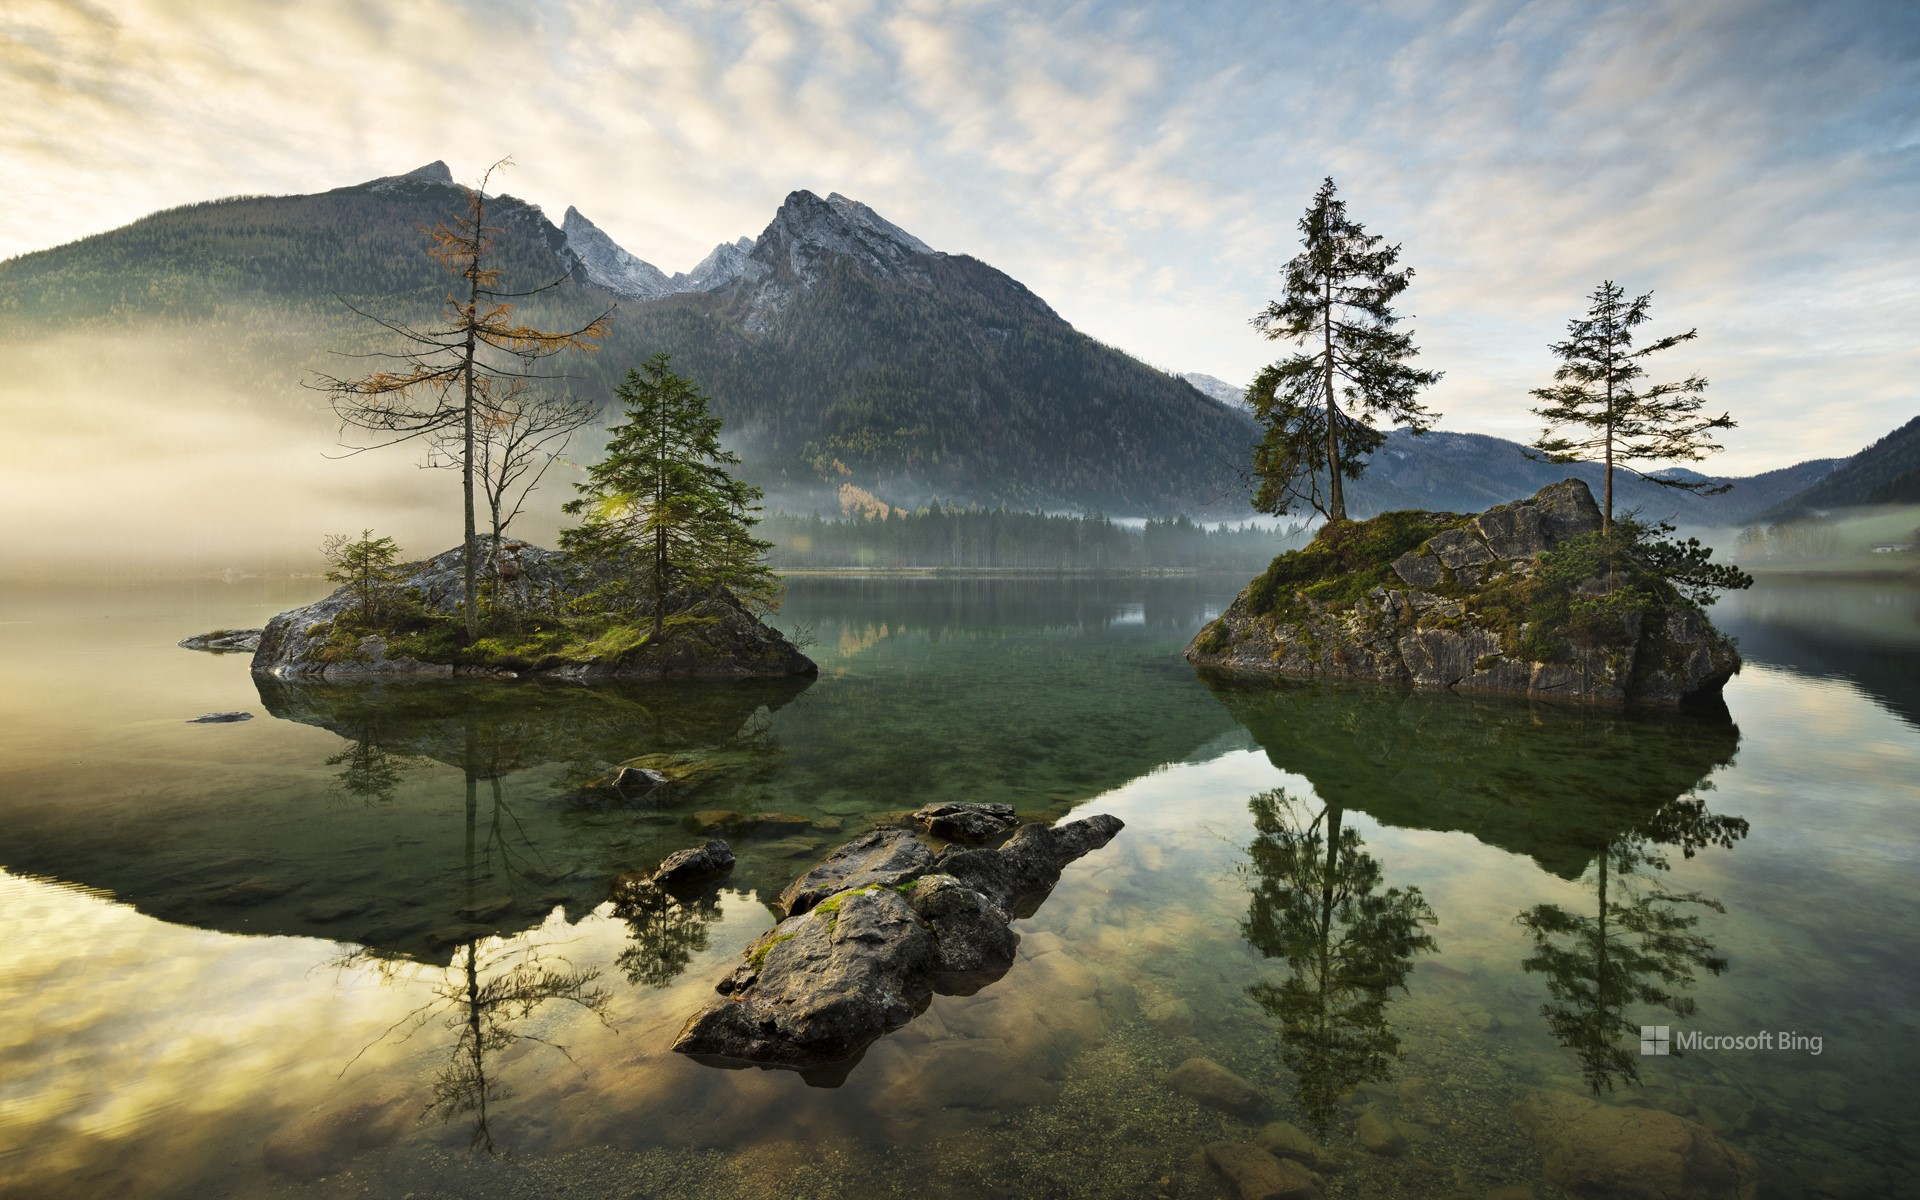 Lake Hintersee surrounded by alpine mountains, Berchtesgaden, Bavaria, Germany